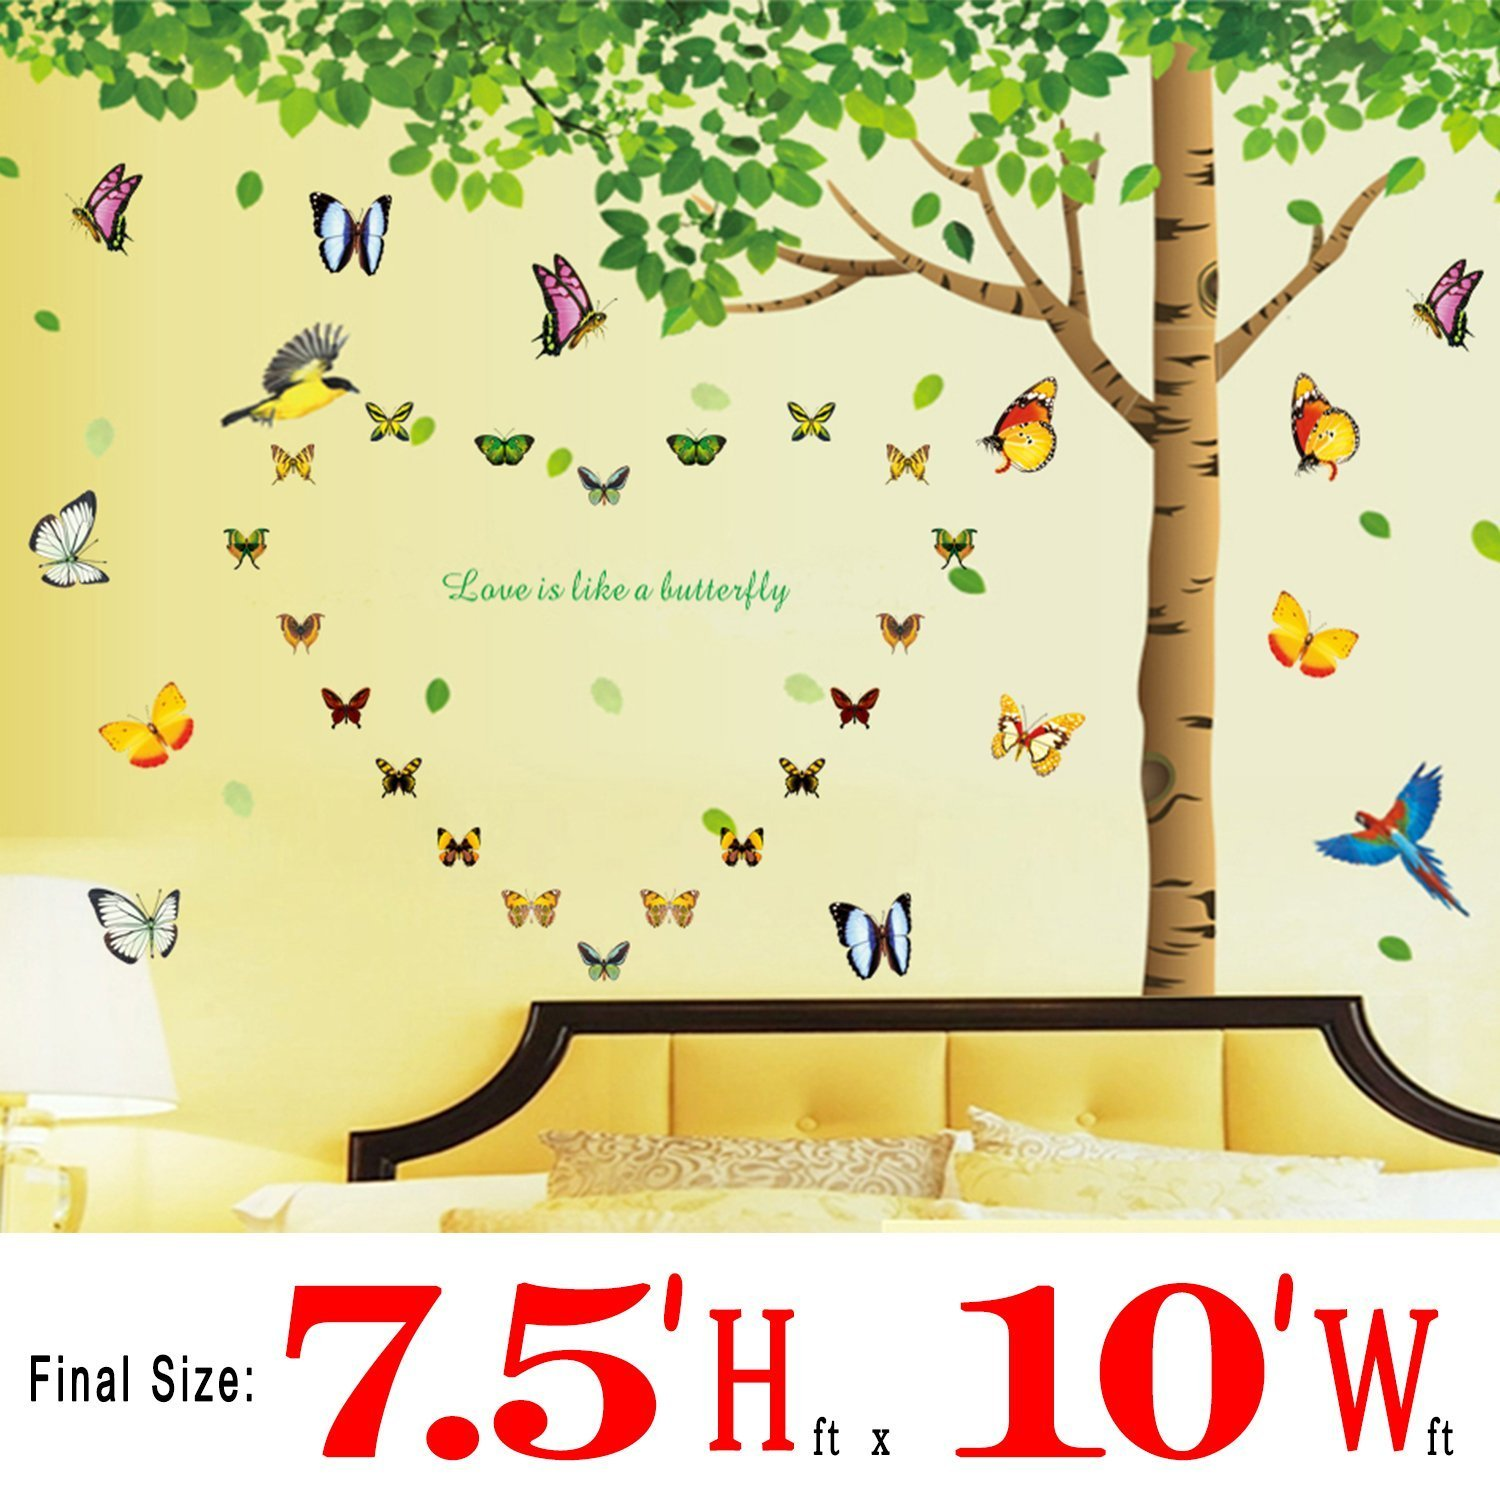 Фото Dago, 7.4'(h) X 9.7'(w) Extra Large 3 in 1 with DIY Many Butterflies& Under the Fresh Green Leaves & Tree to Enjoy Easy and Relaxed Quote Removable Wall Decal Sticker for Kids & Living Room family wall quote removable wall stickers home decal art mural